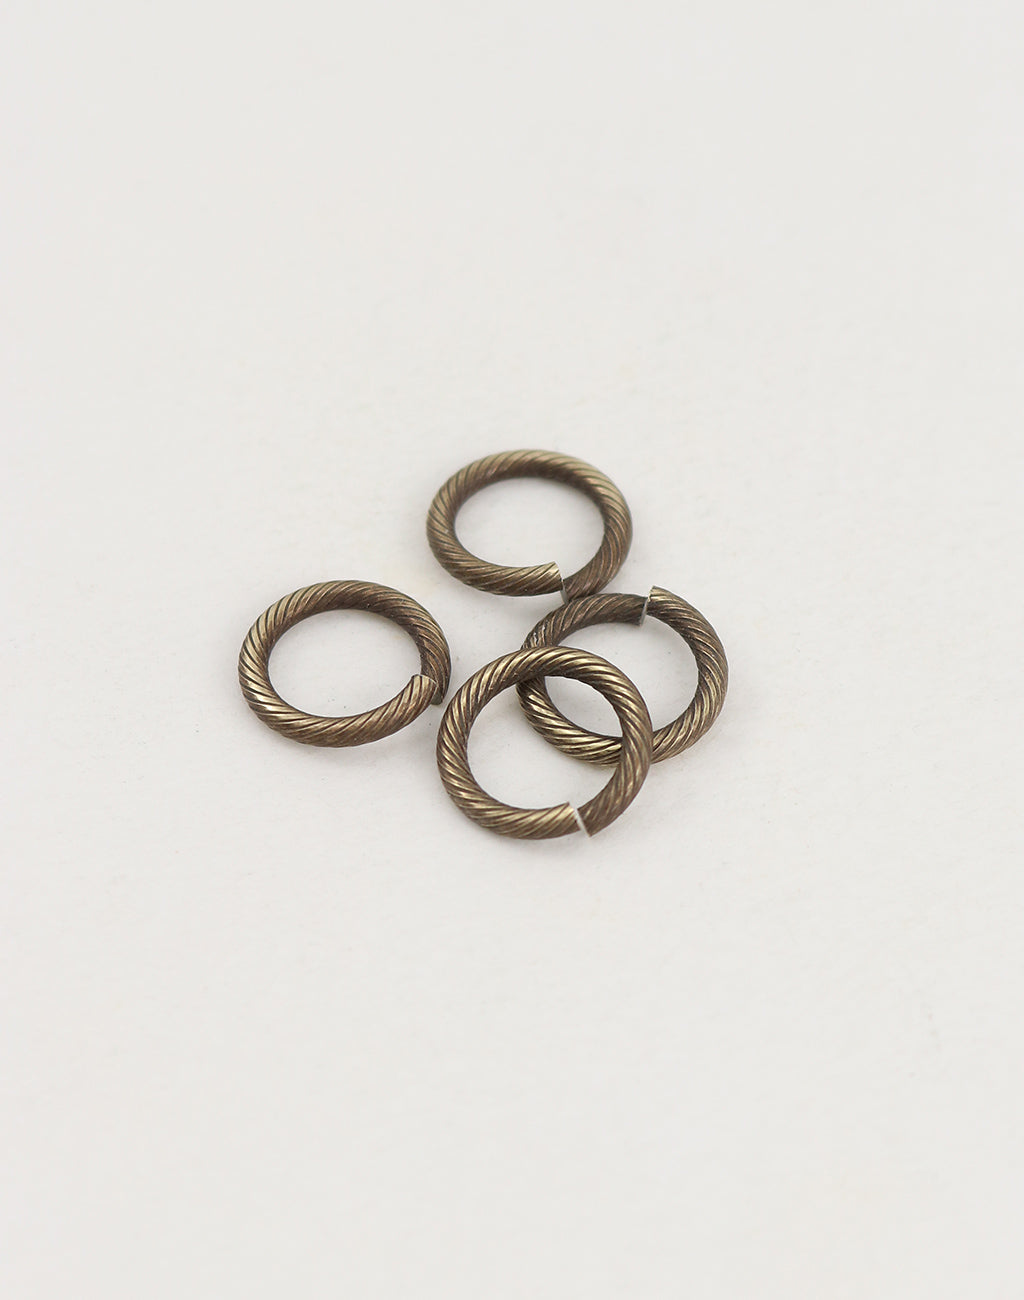 Cable Jump Ring, 12.75mm, 13ga, (4pcs)